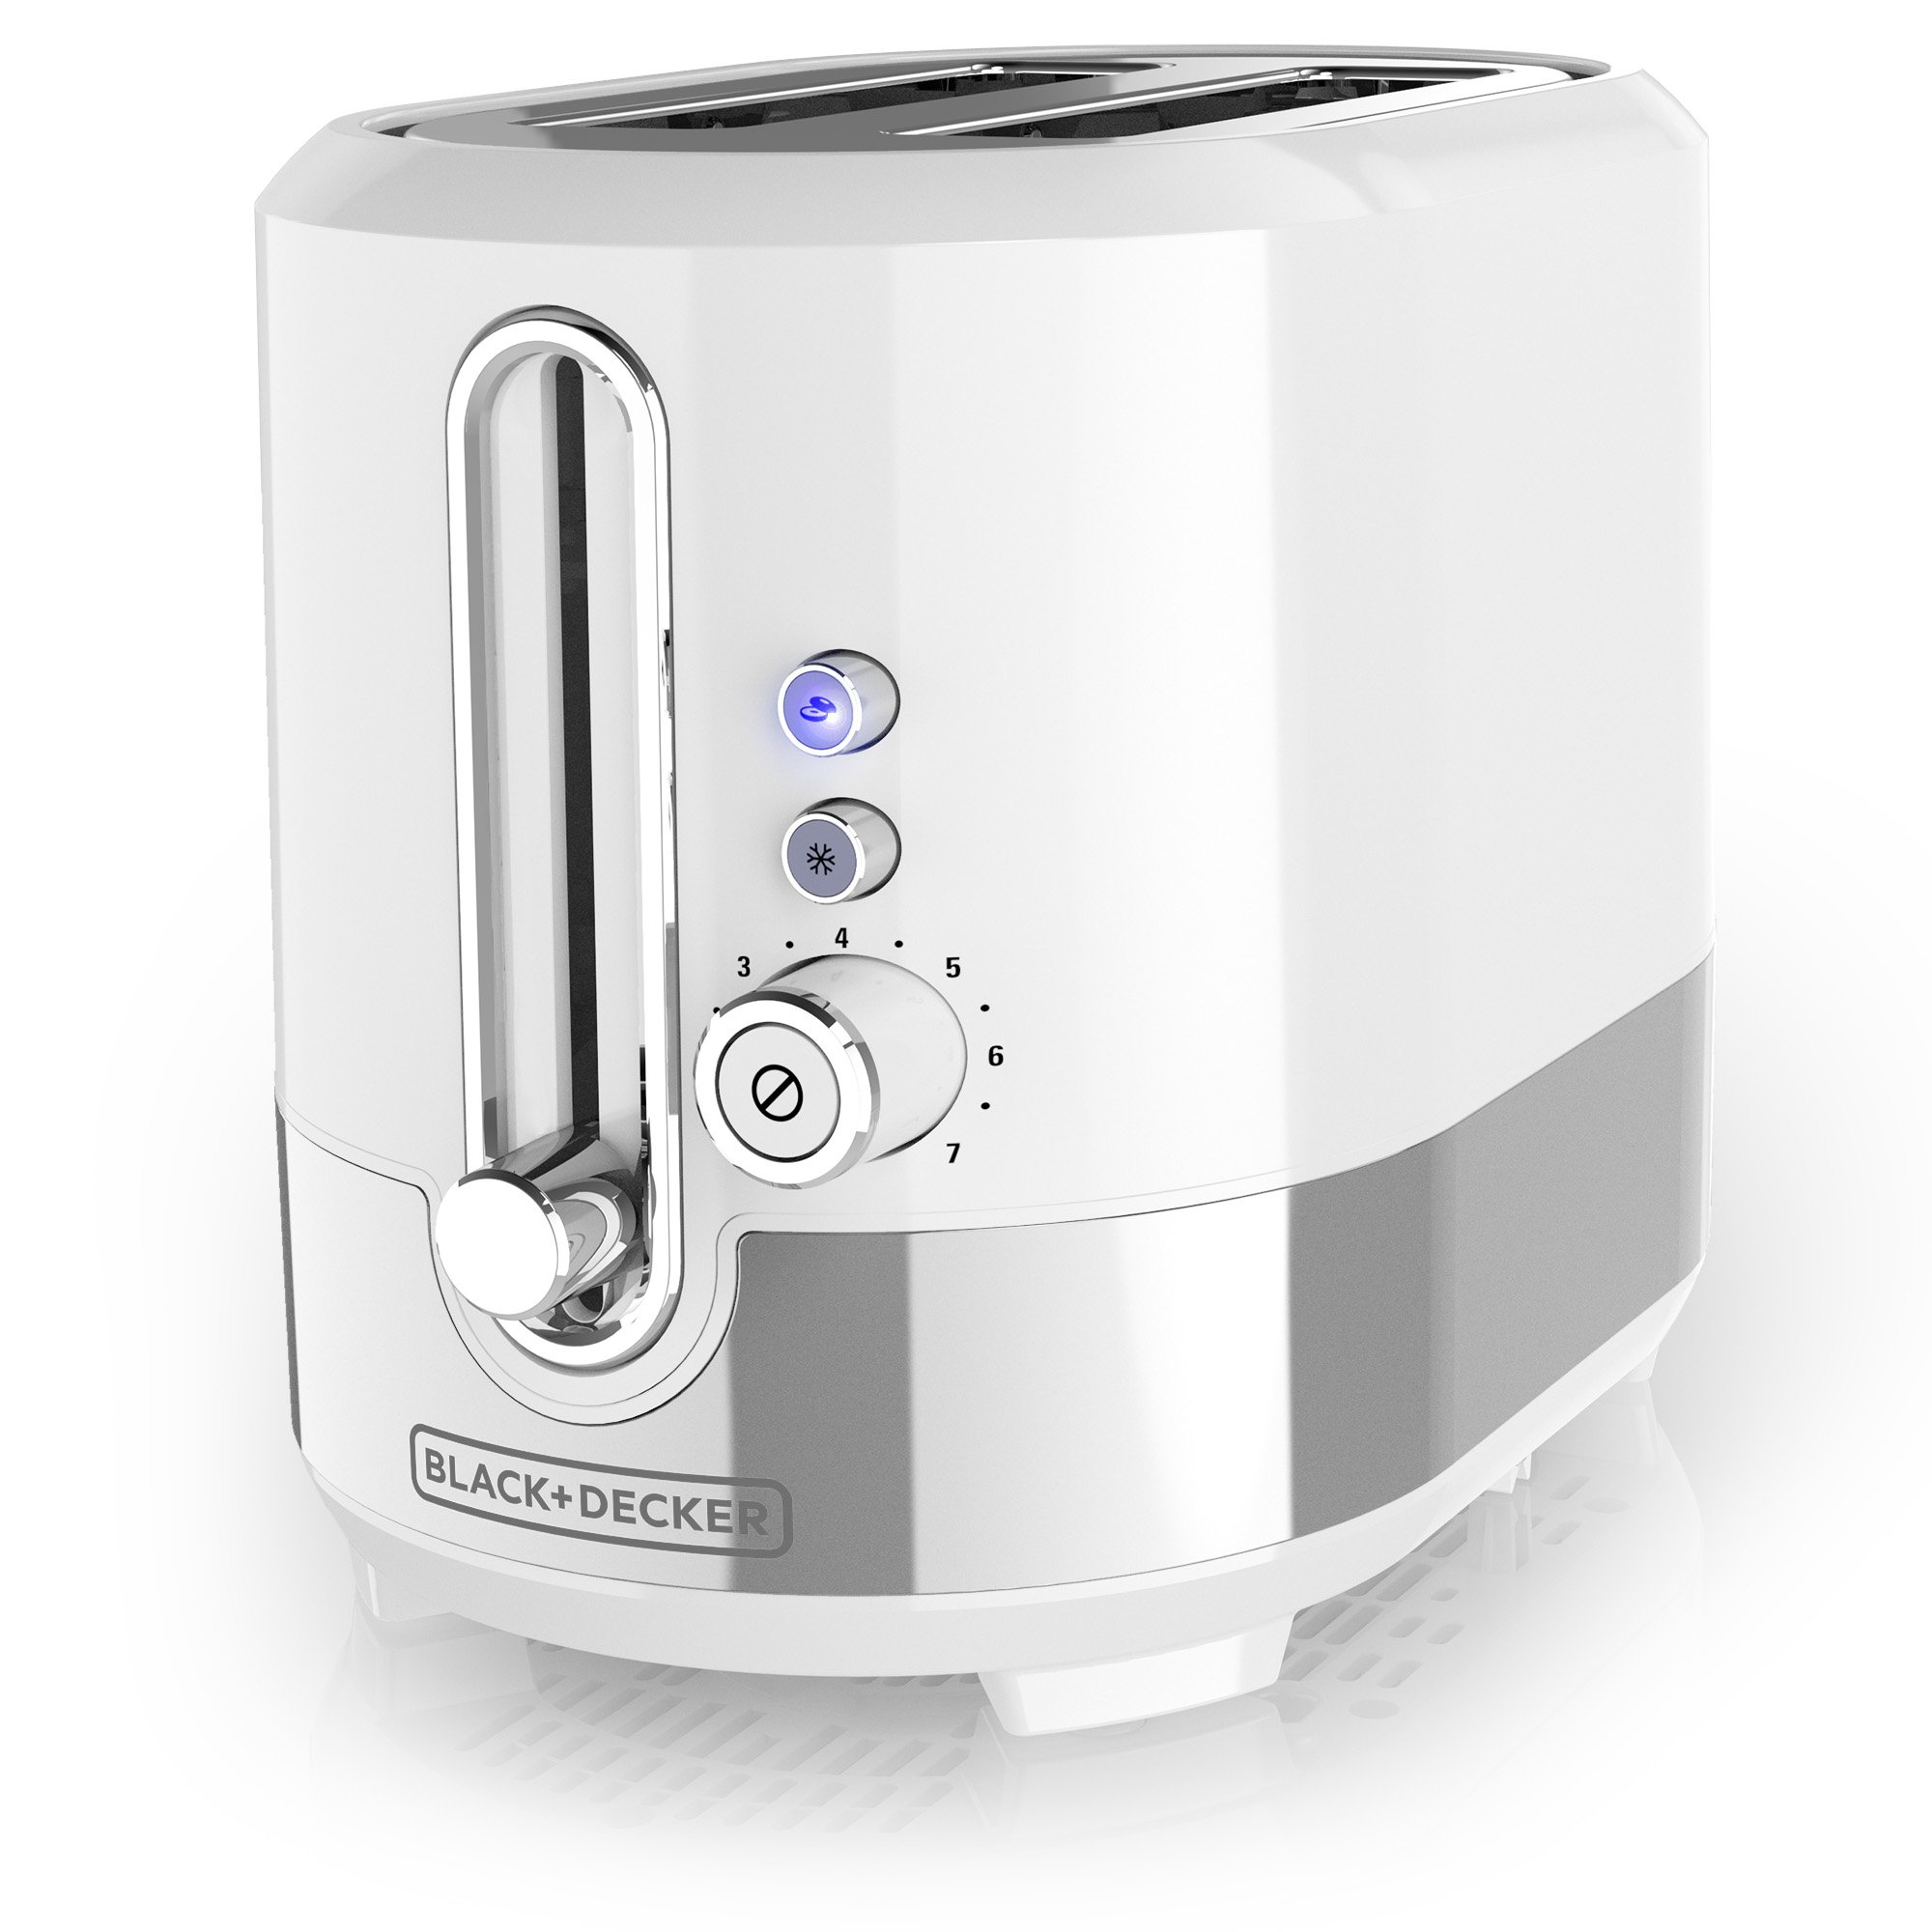 2-Slice Extra-Wide Slot Toaster, White by Black & Decker